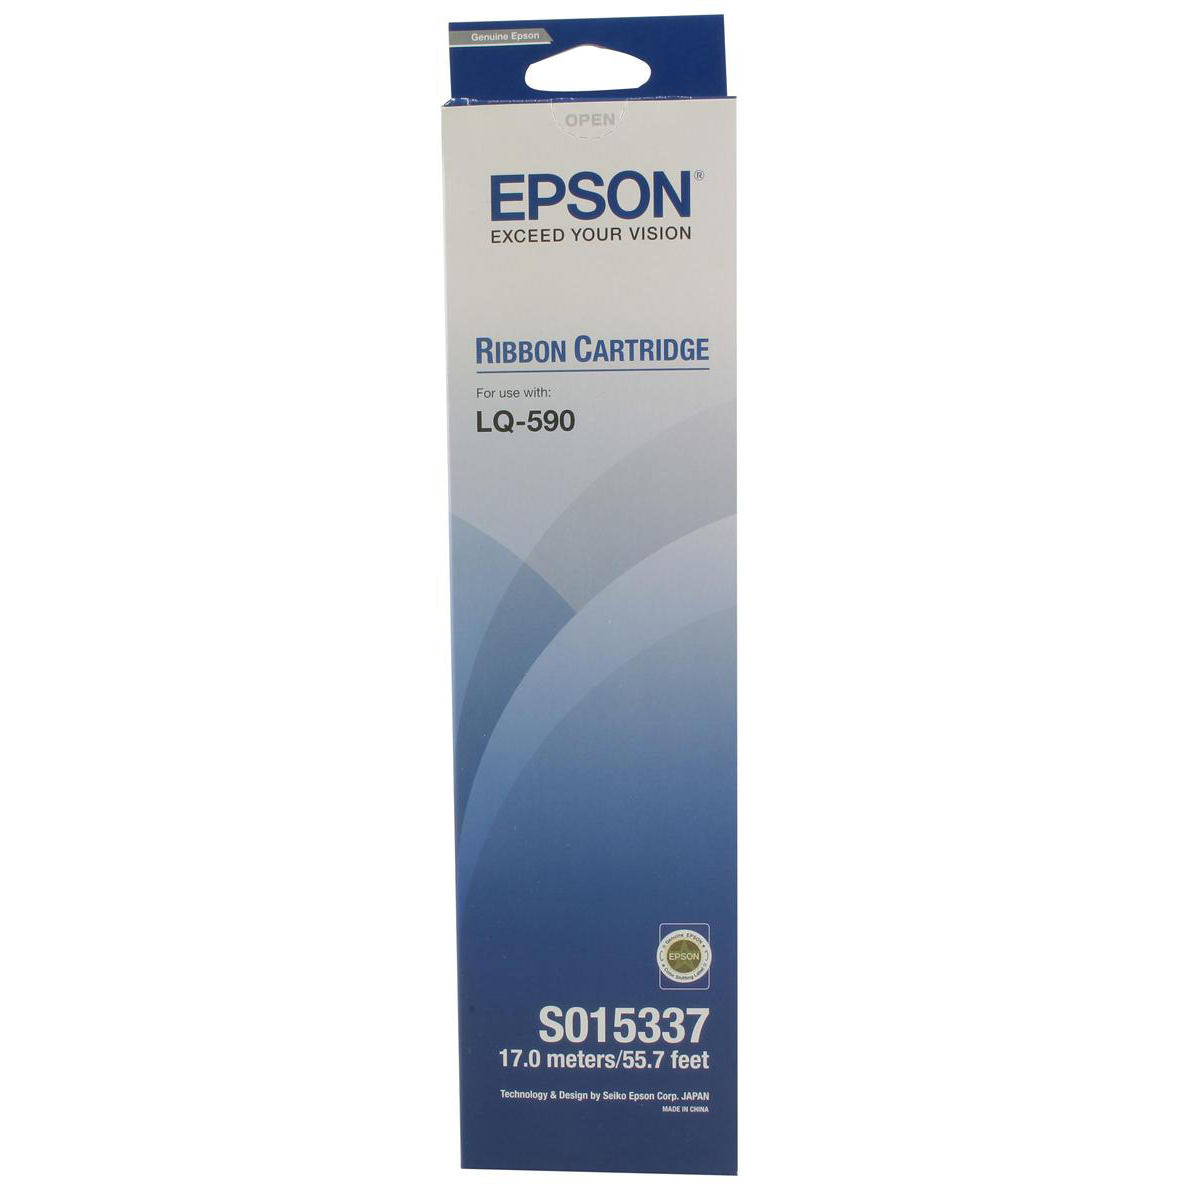 Epson Printer Ribbon Fabric Nylon Black LQ590 Ref S015337